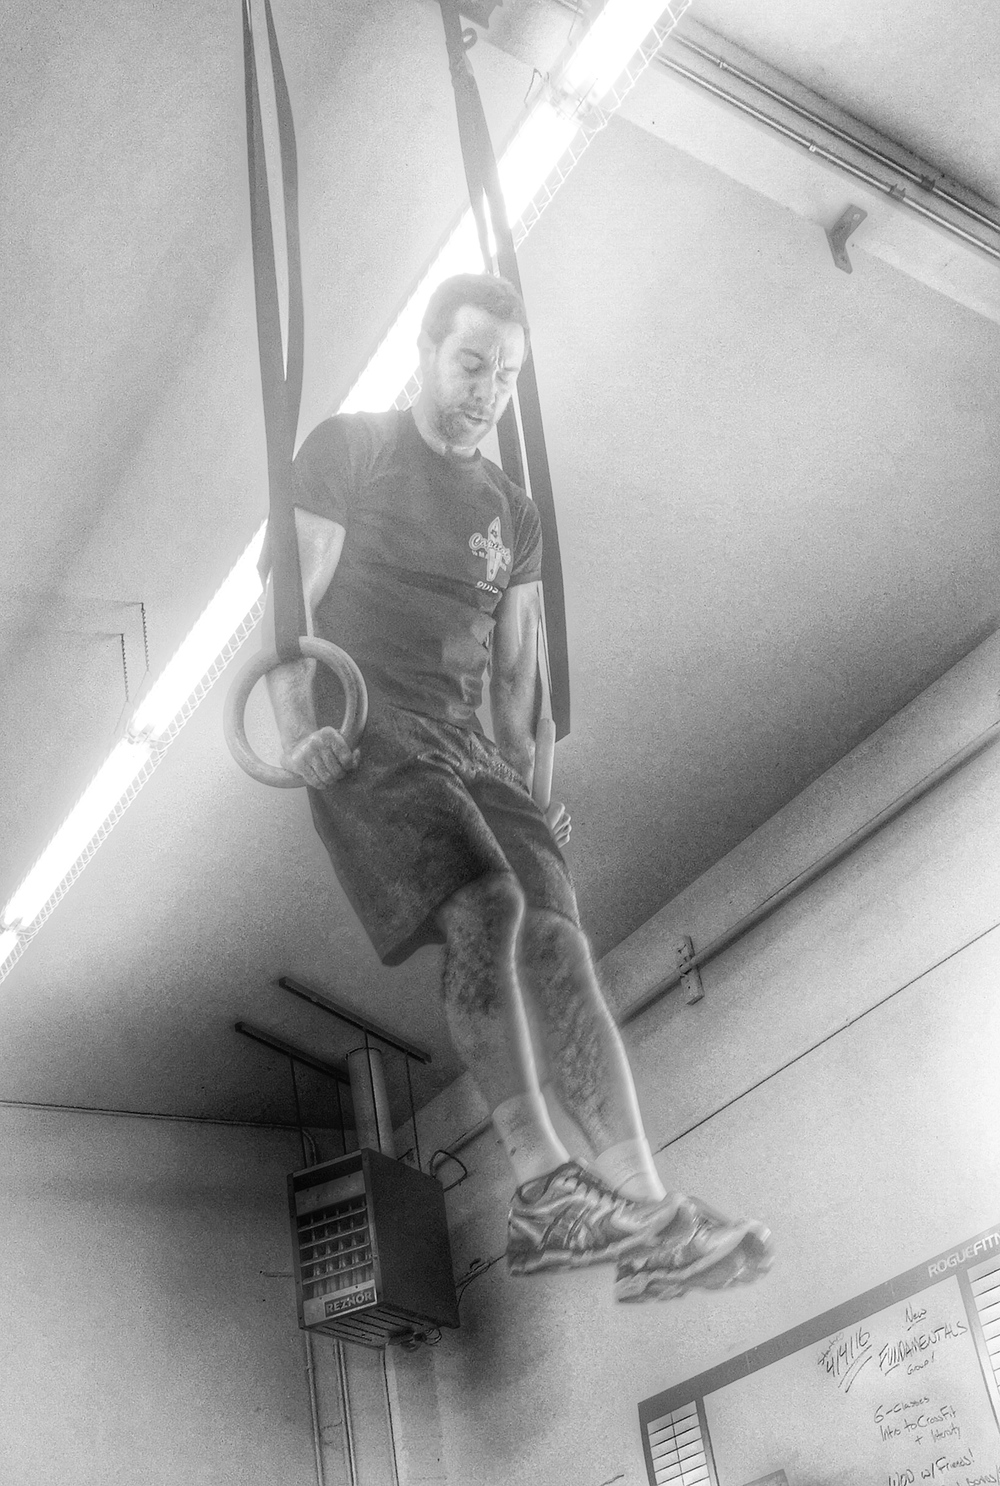 Paulgetting an elevated view during last week's muscle UP workout.